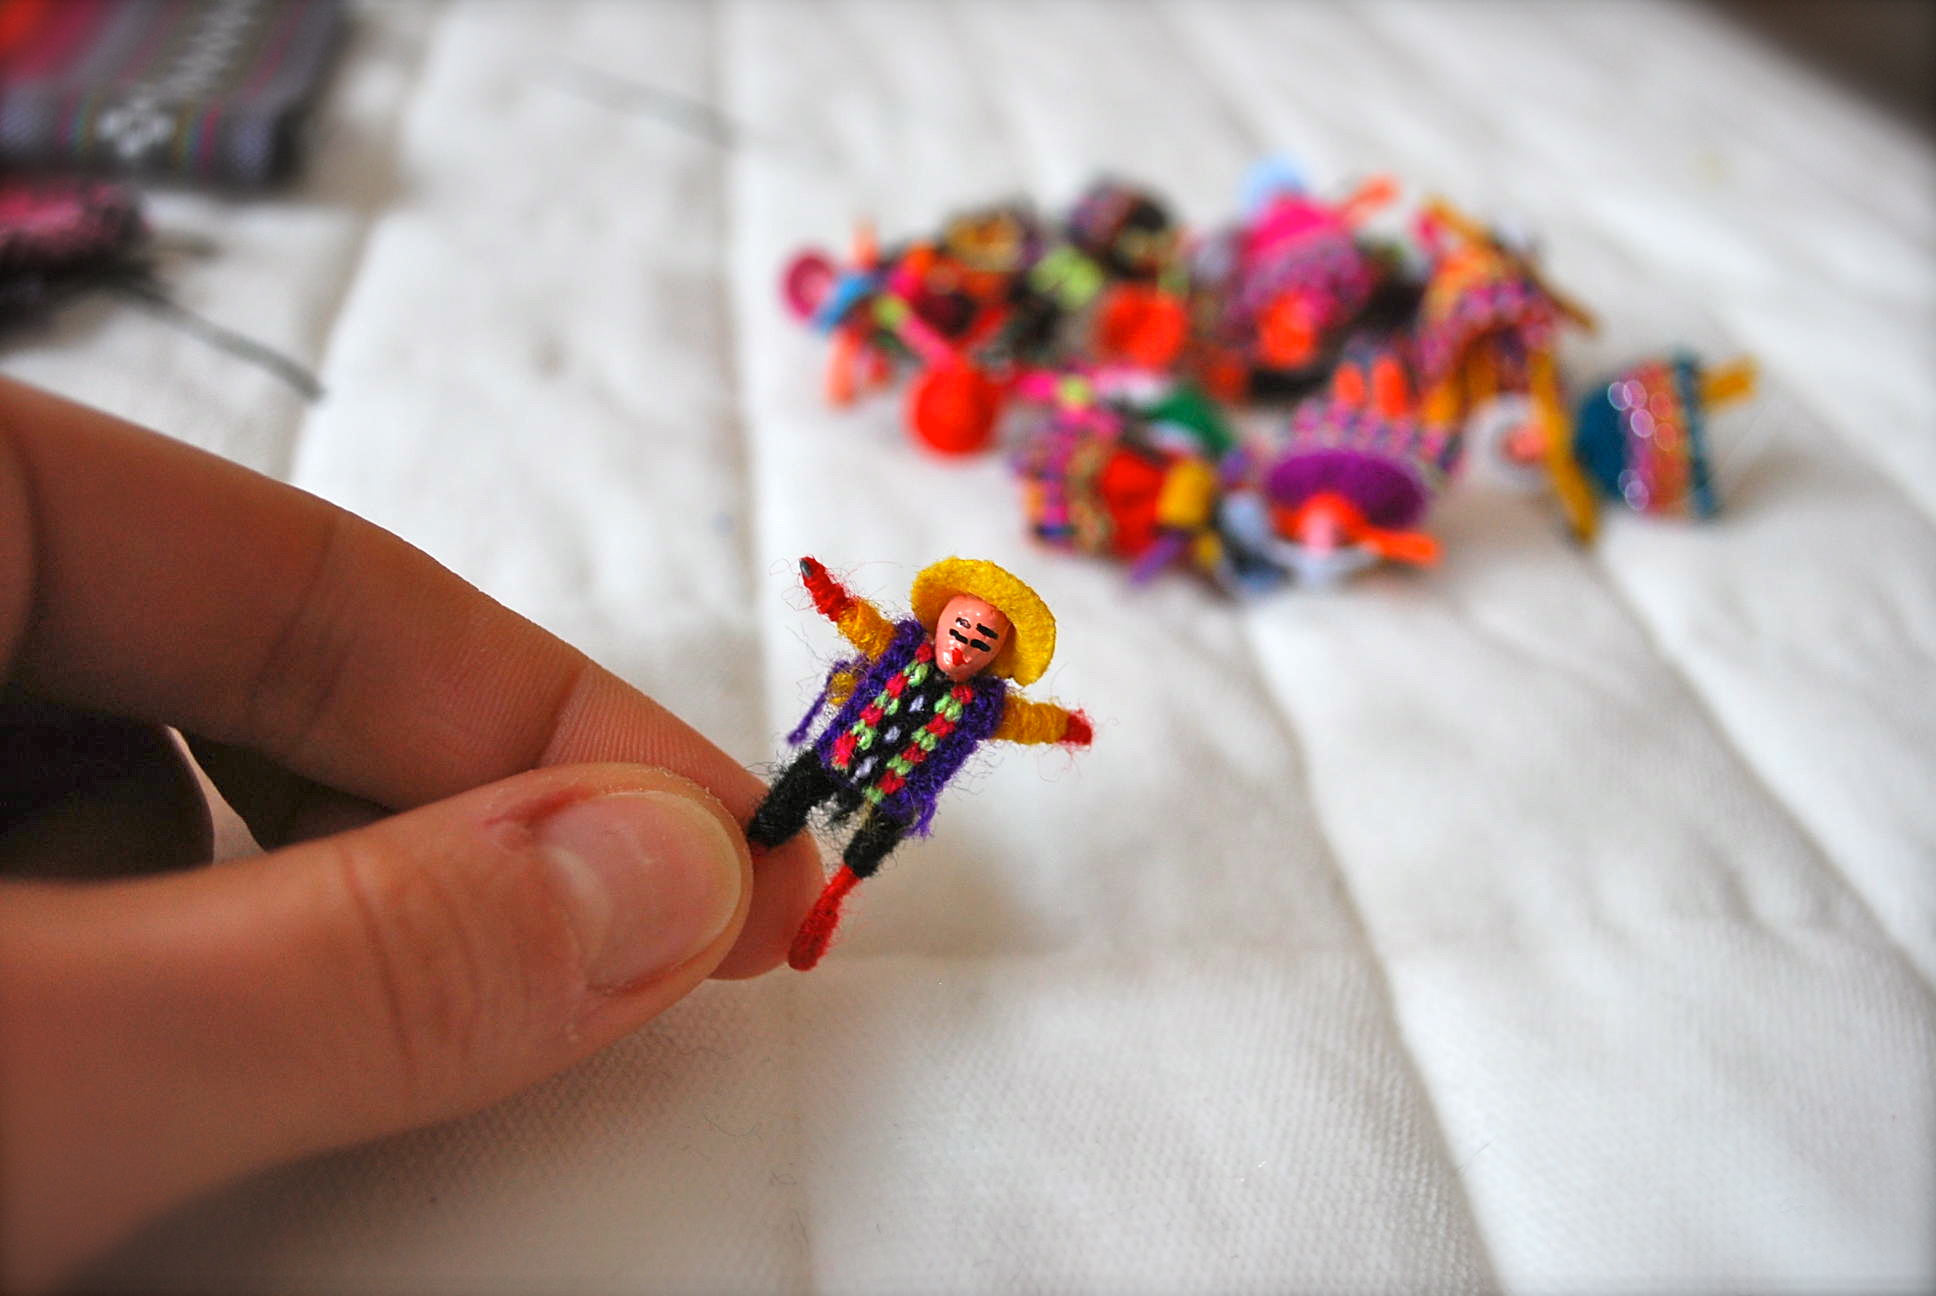 South American Worry Doll